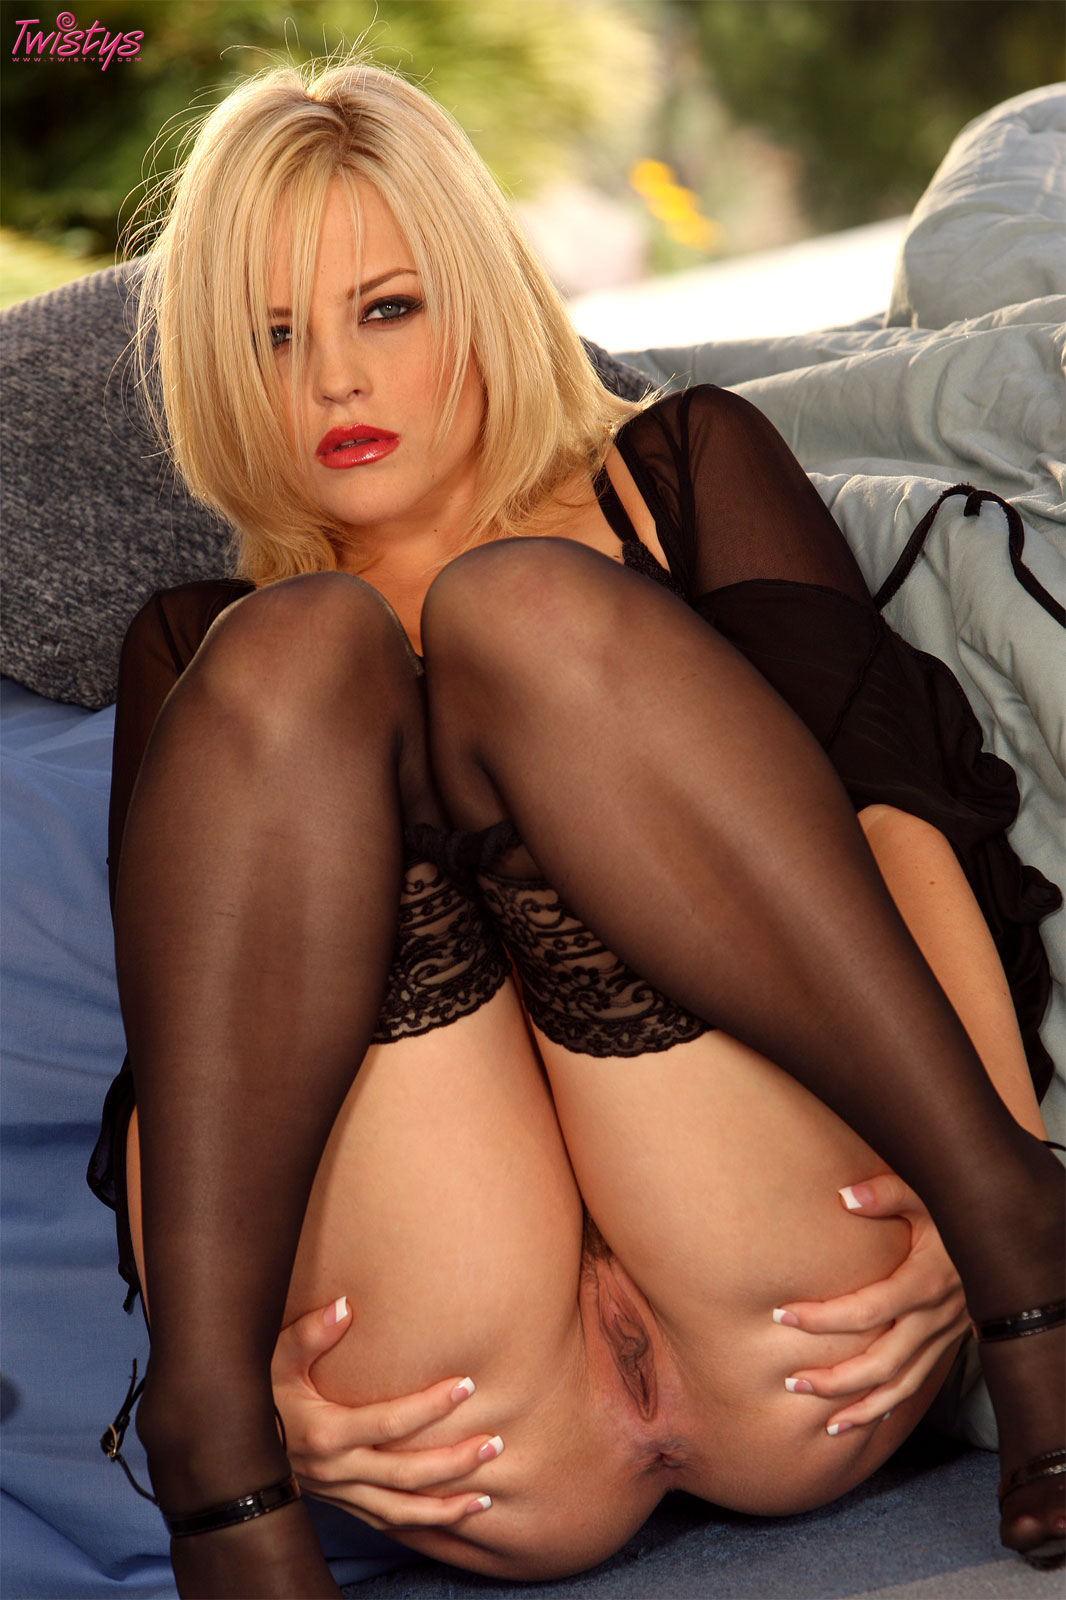 Alexis texas wearing sexy stockings and spreading her ass movie shark alexis texas wearing sexy stockings and spreading her ass altavistaventures Gallery